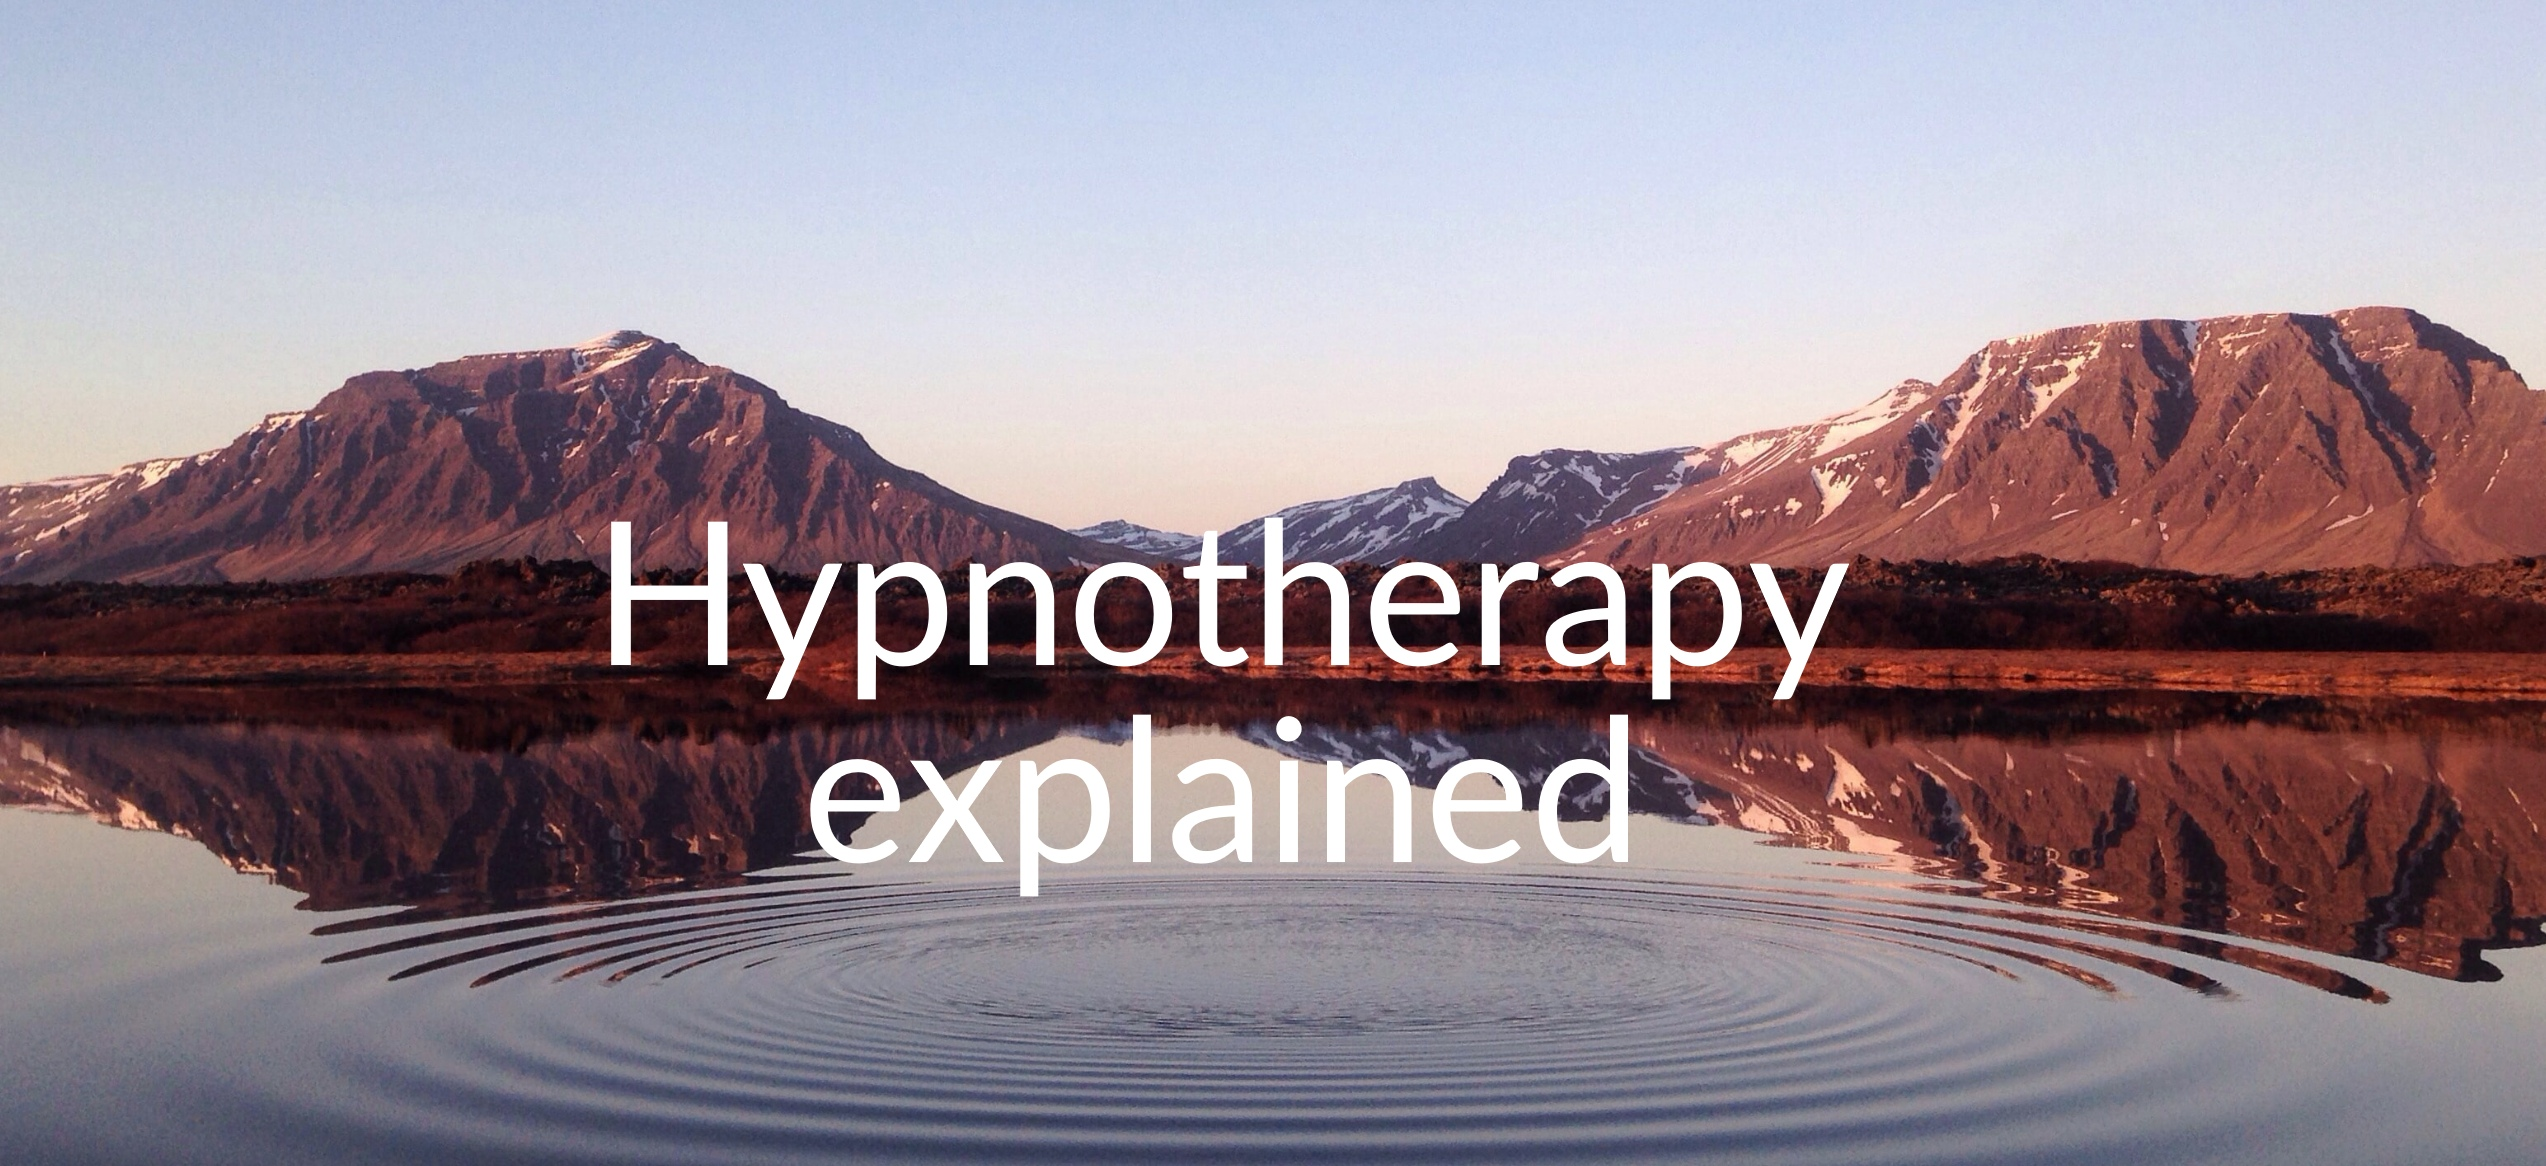 Hypnotherapy Explained - learn how it can help you overcome issues - Rebecca Edmonds Hypnotherapy